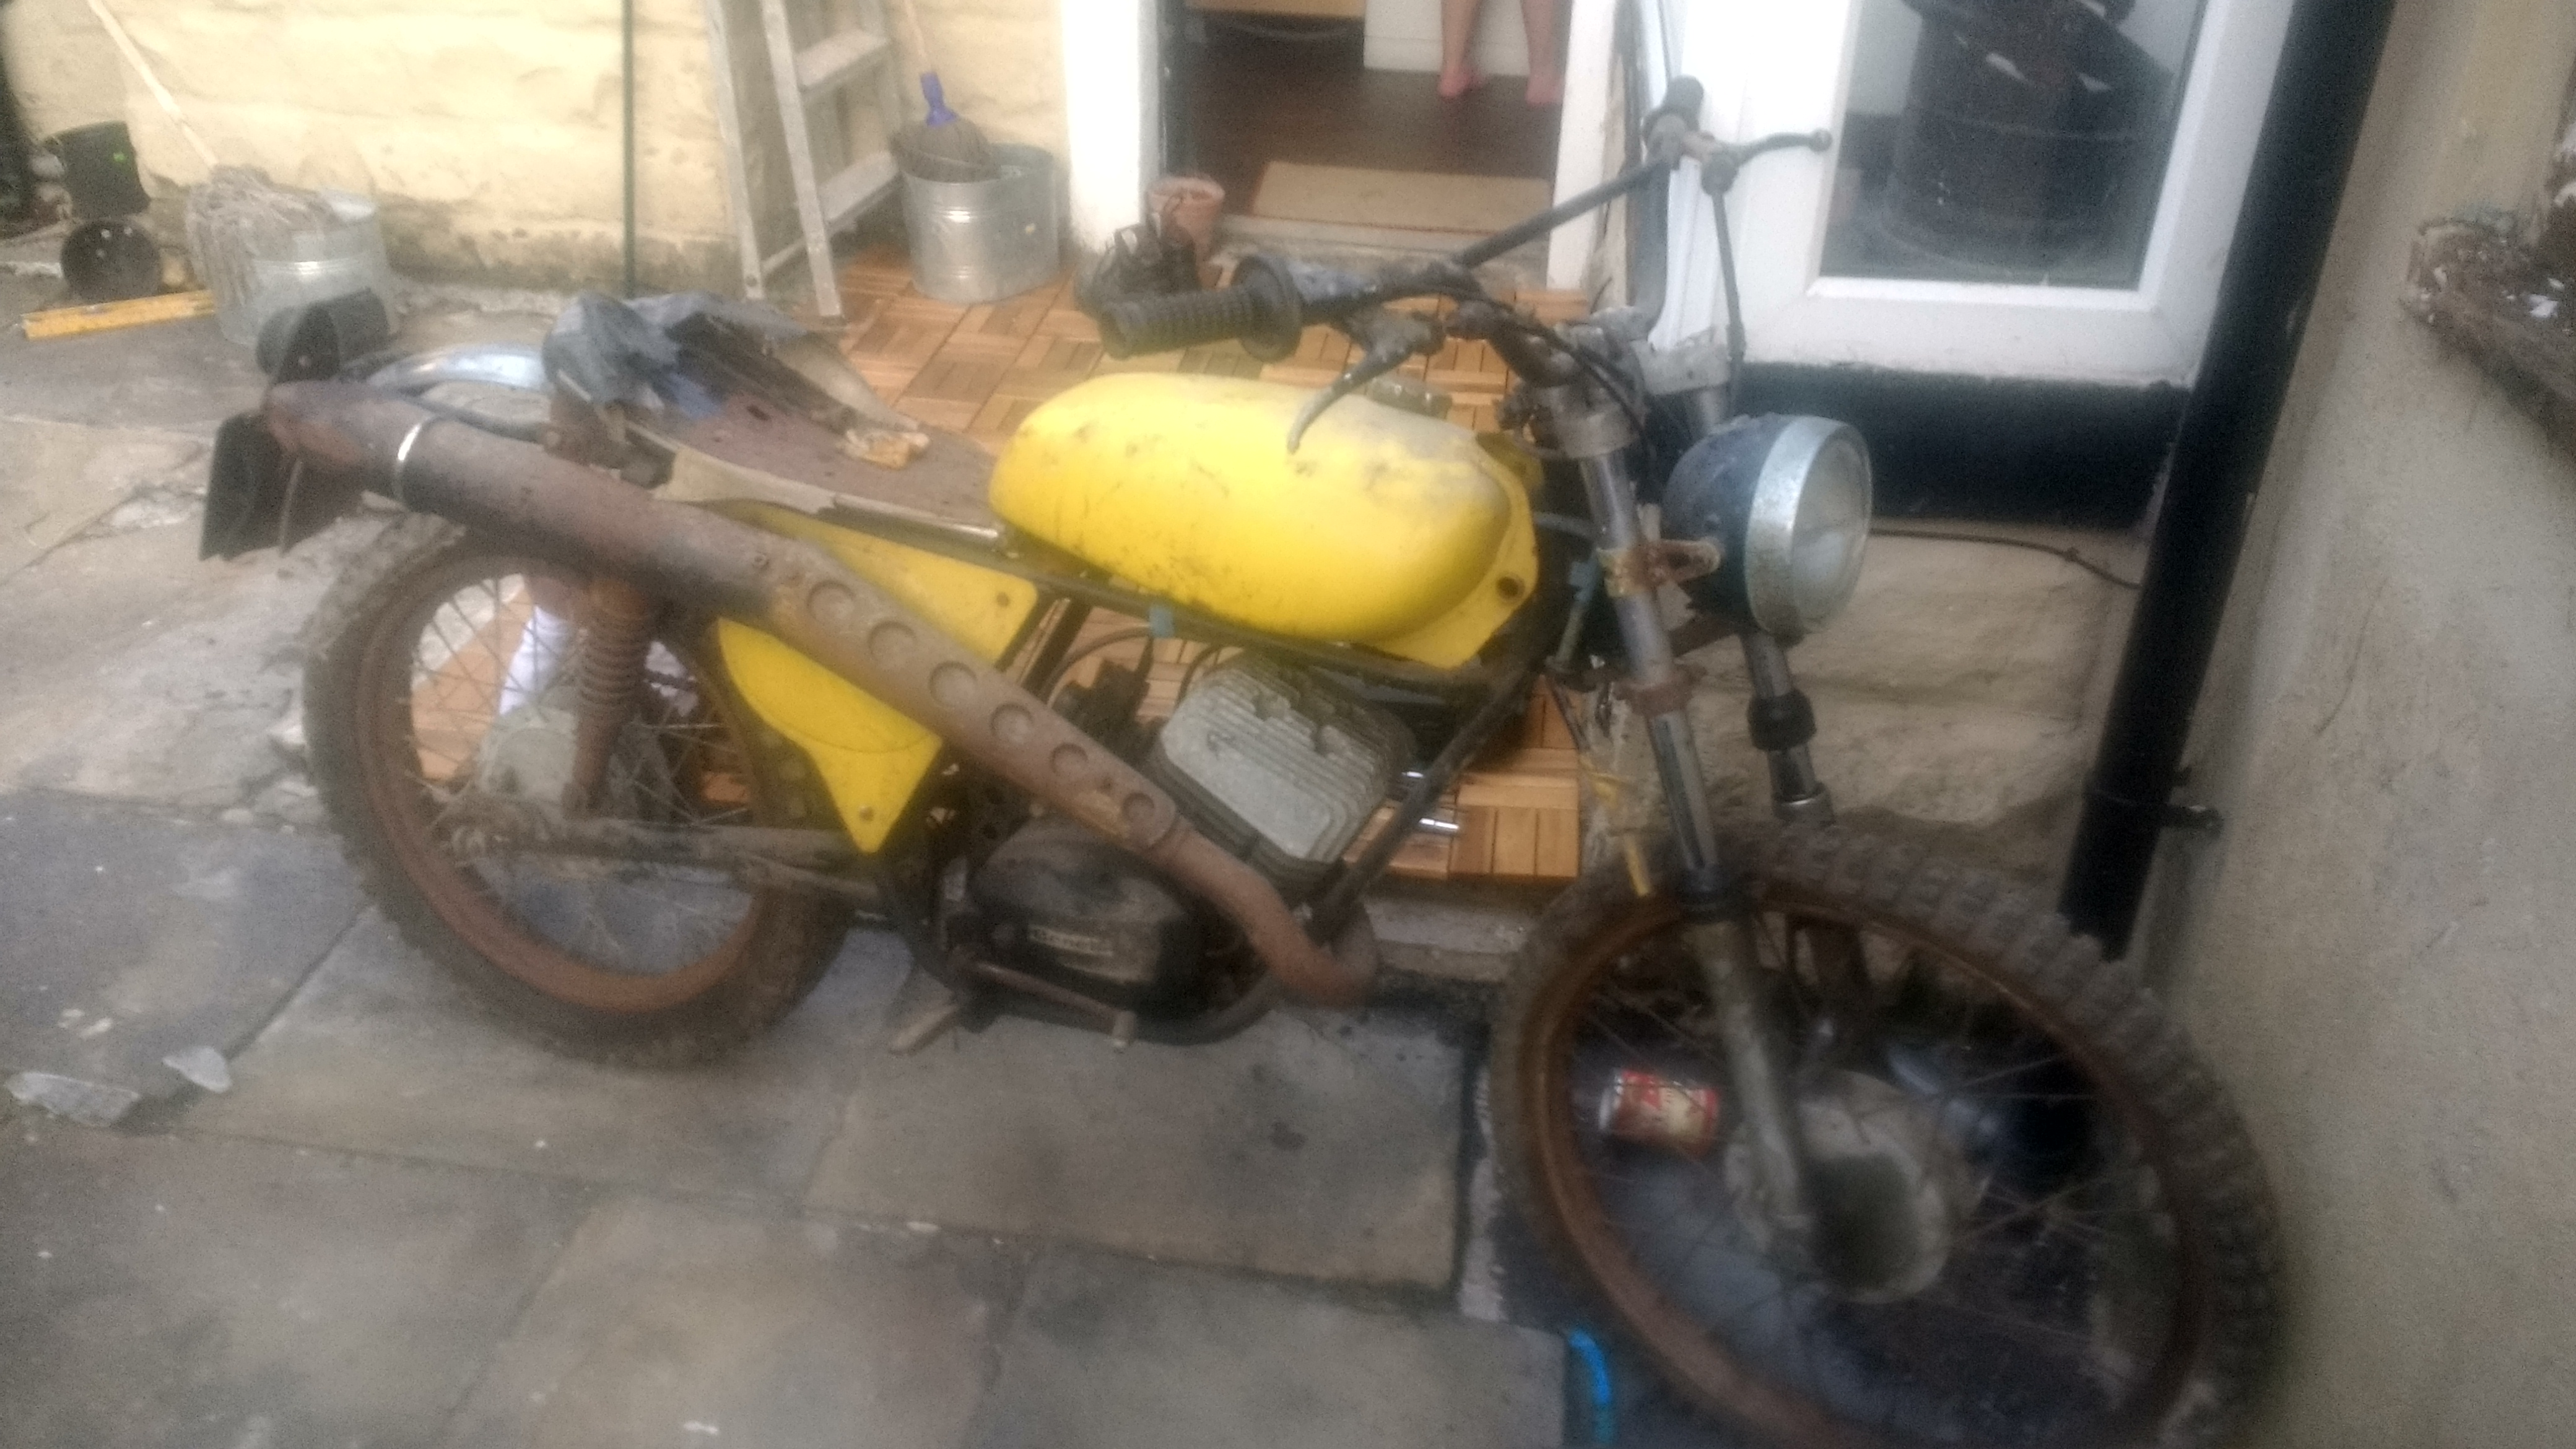 benelli 125 cross project parts help please-img_20170522_203428540_hdr%5B1%5D.jpg